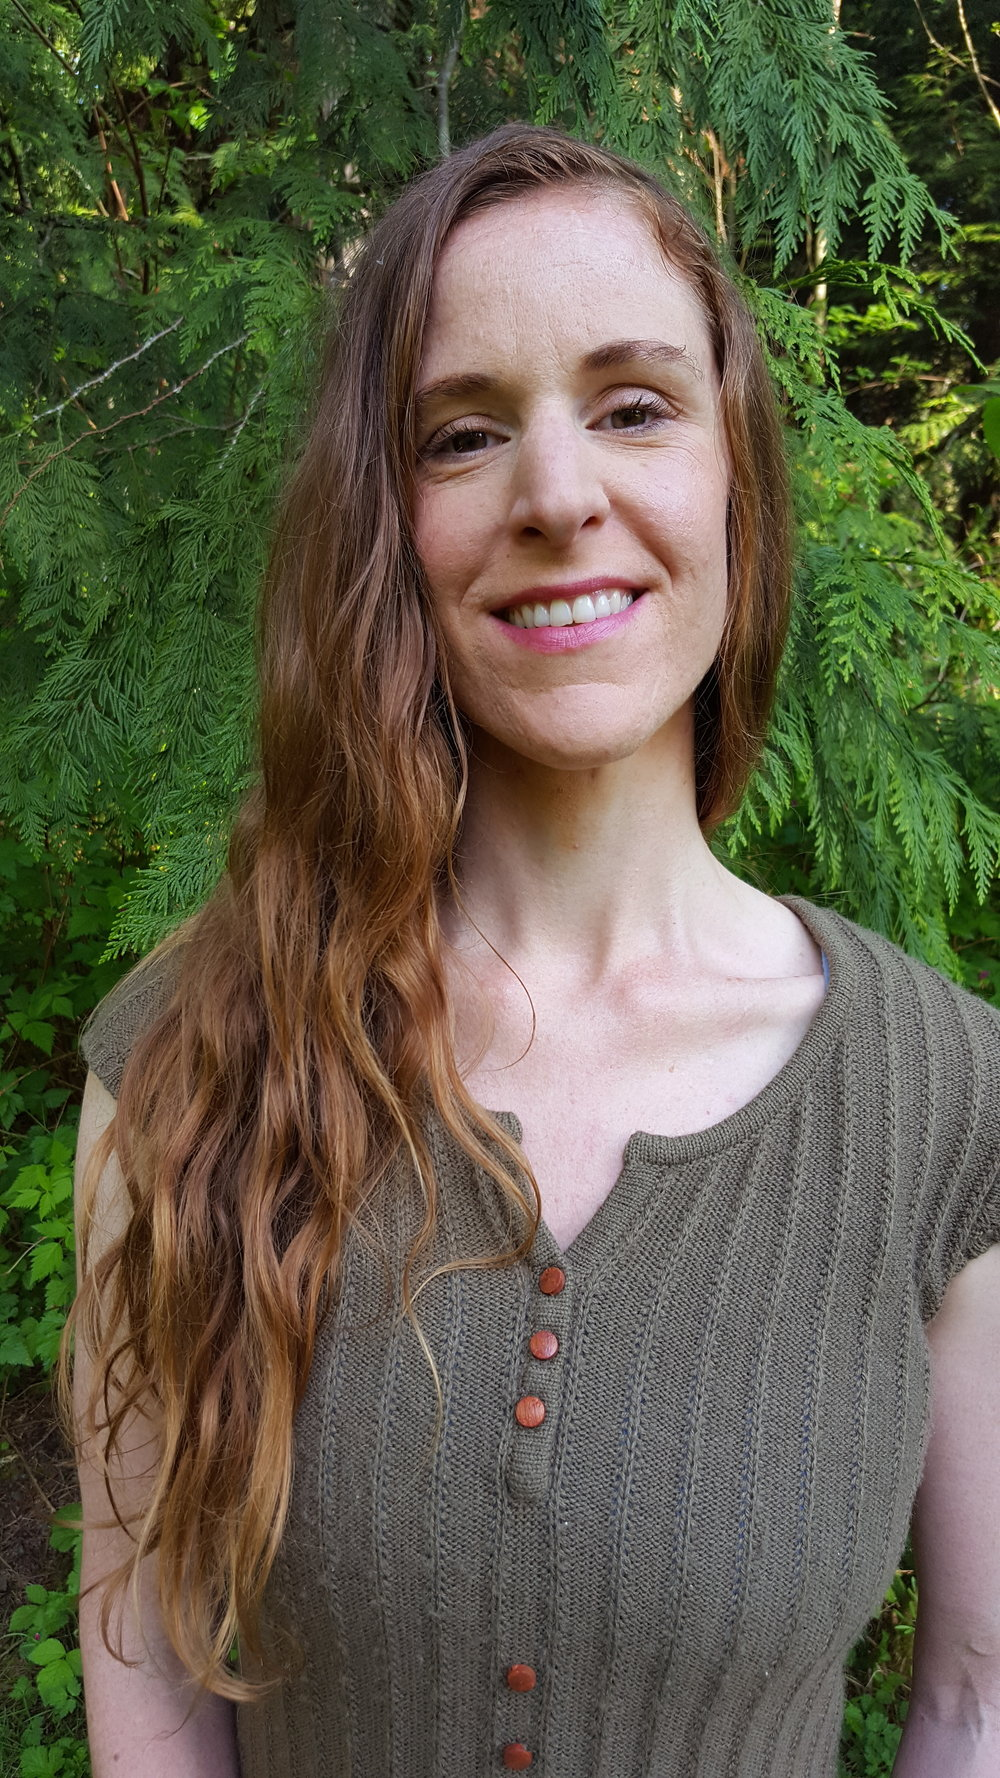 I am Iyengar Certified as well as a licensed Physical Therapist Assistant. Since working as a PTA, I have become fully immersed in the application of safe, creative, and powerful biomechanical movement to yoga practice and teaching. -